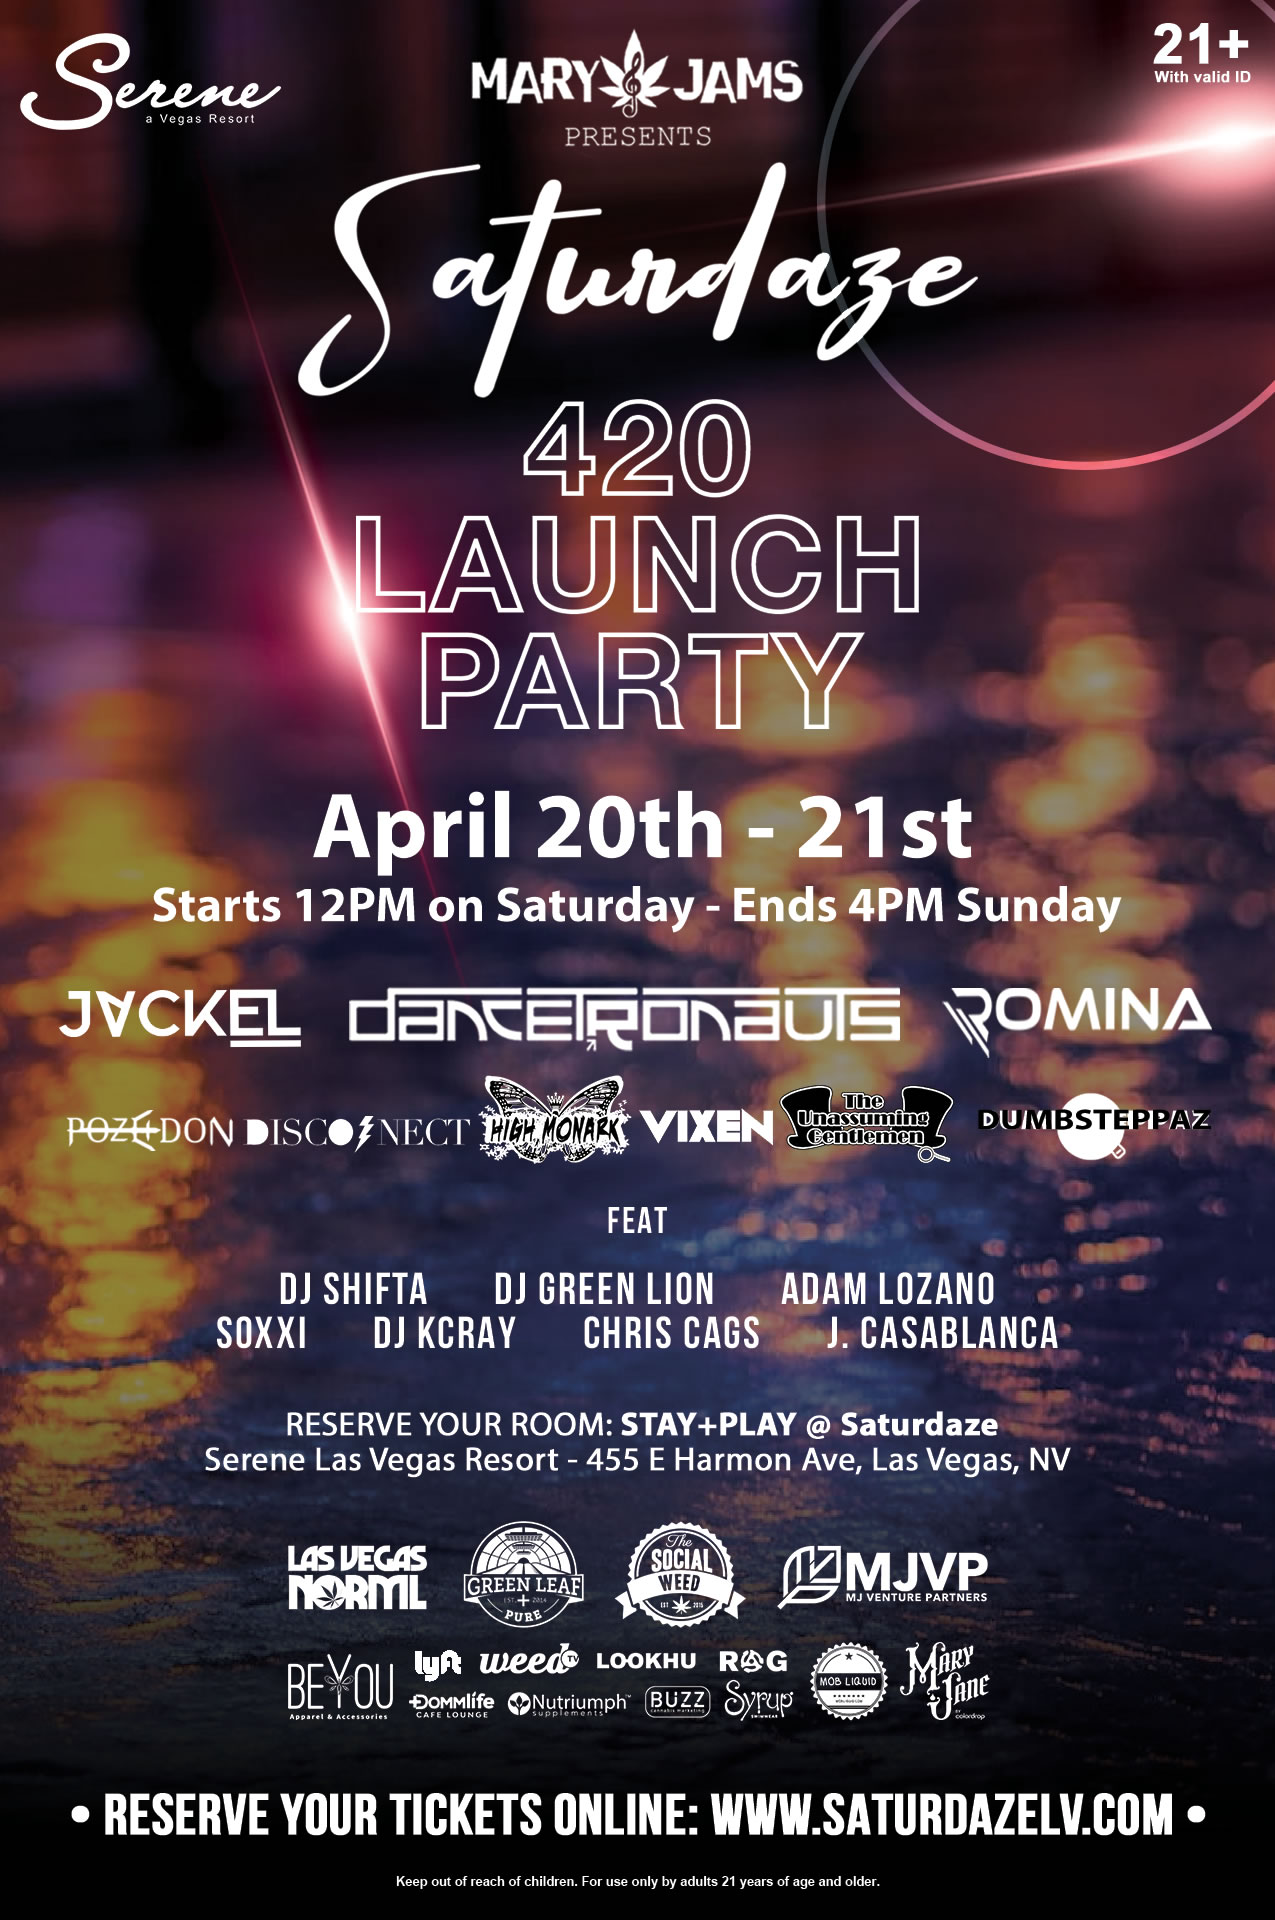 SATURDAZE Las Vegas 420 launch party event